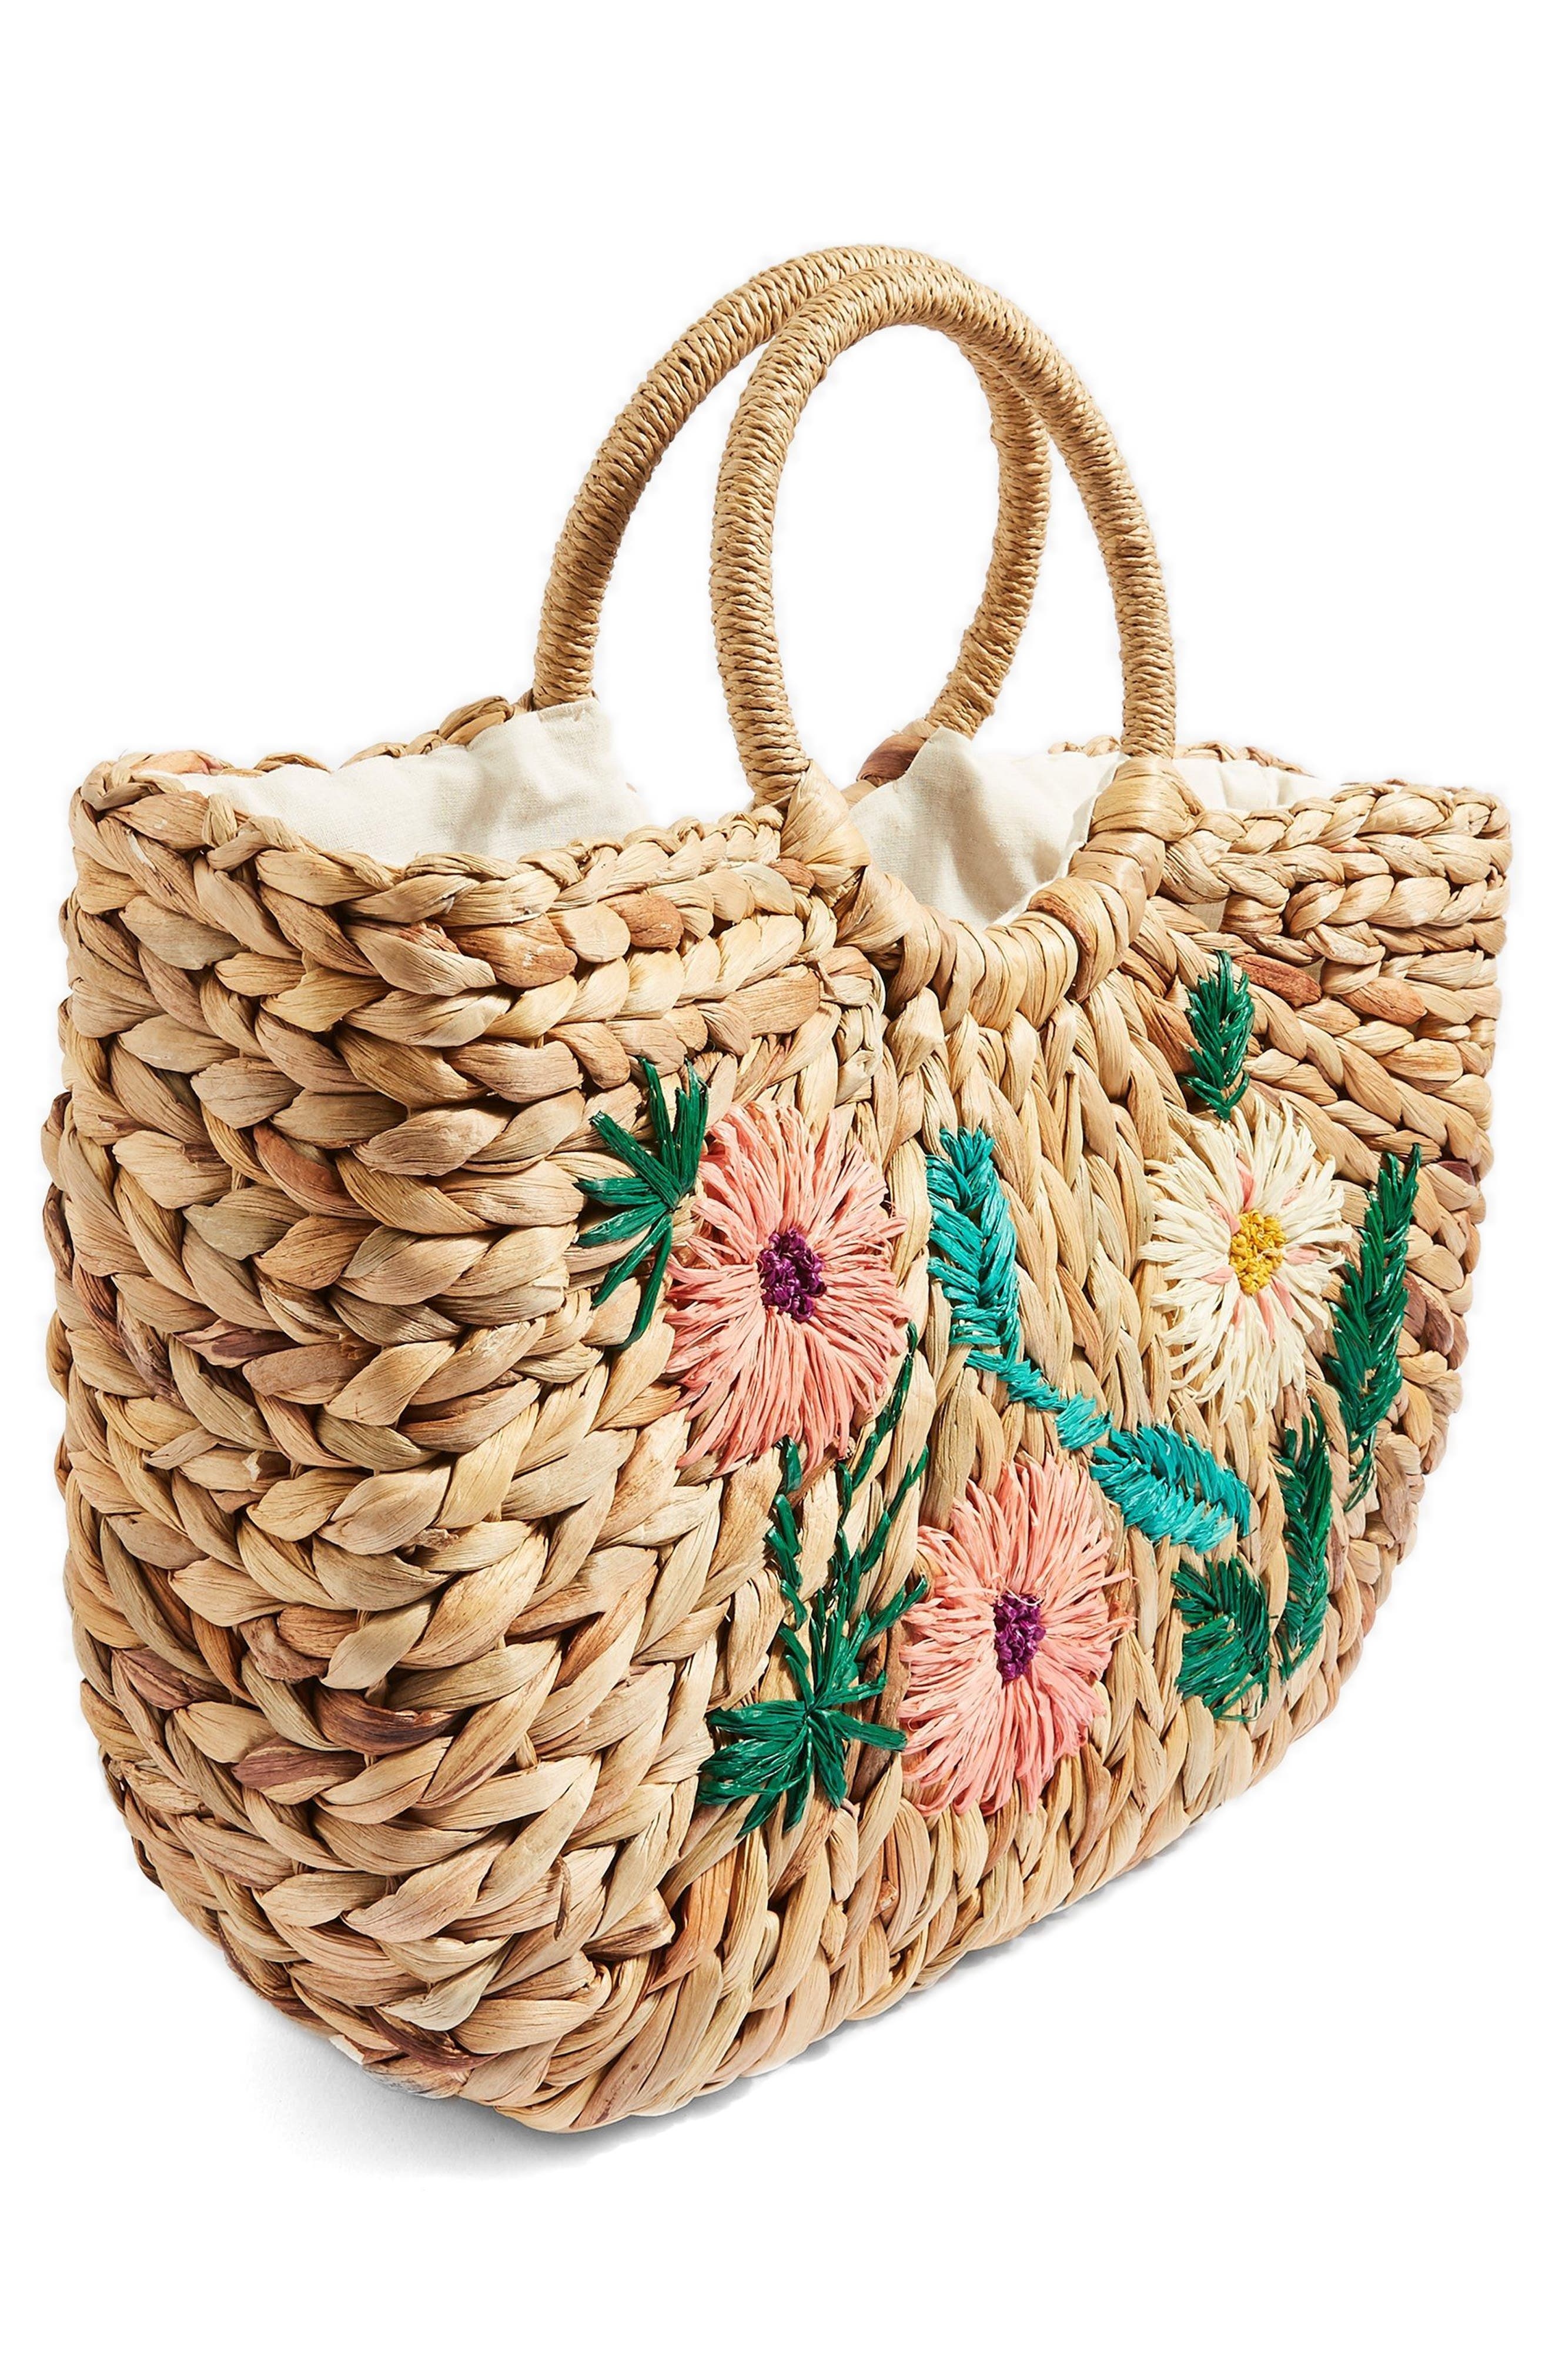 Beverly Floral Embroidered Straw Tote Bag,                             Alternate thumbnail 3, color,                             Nude Multi